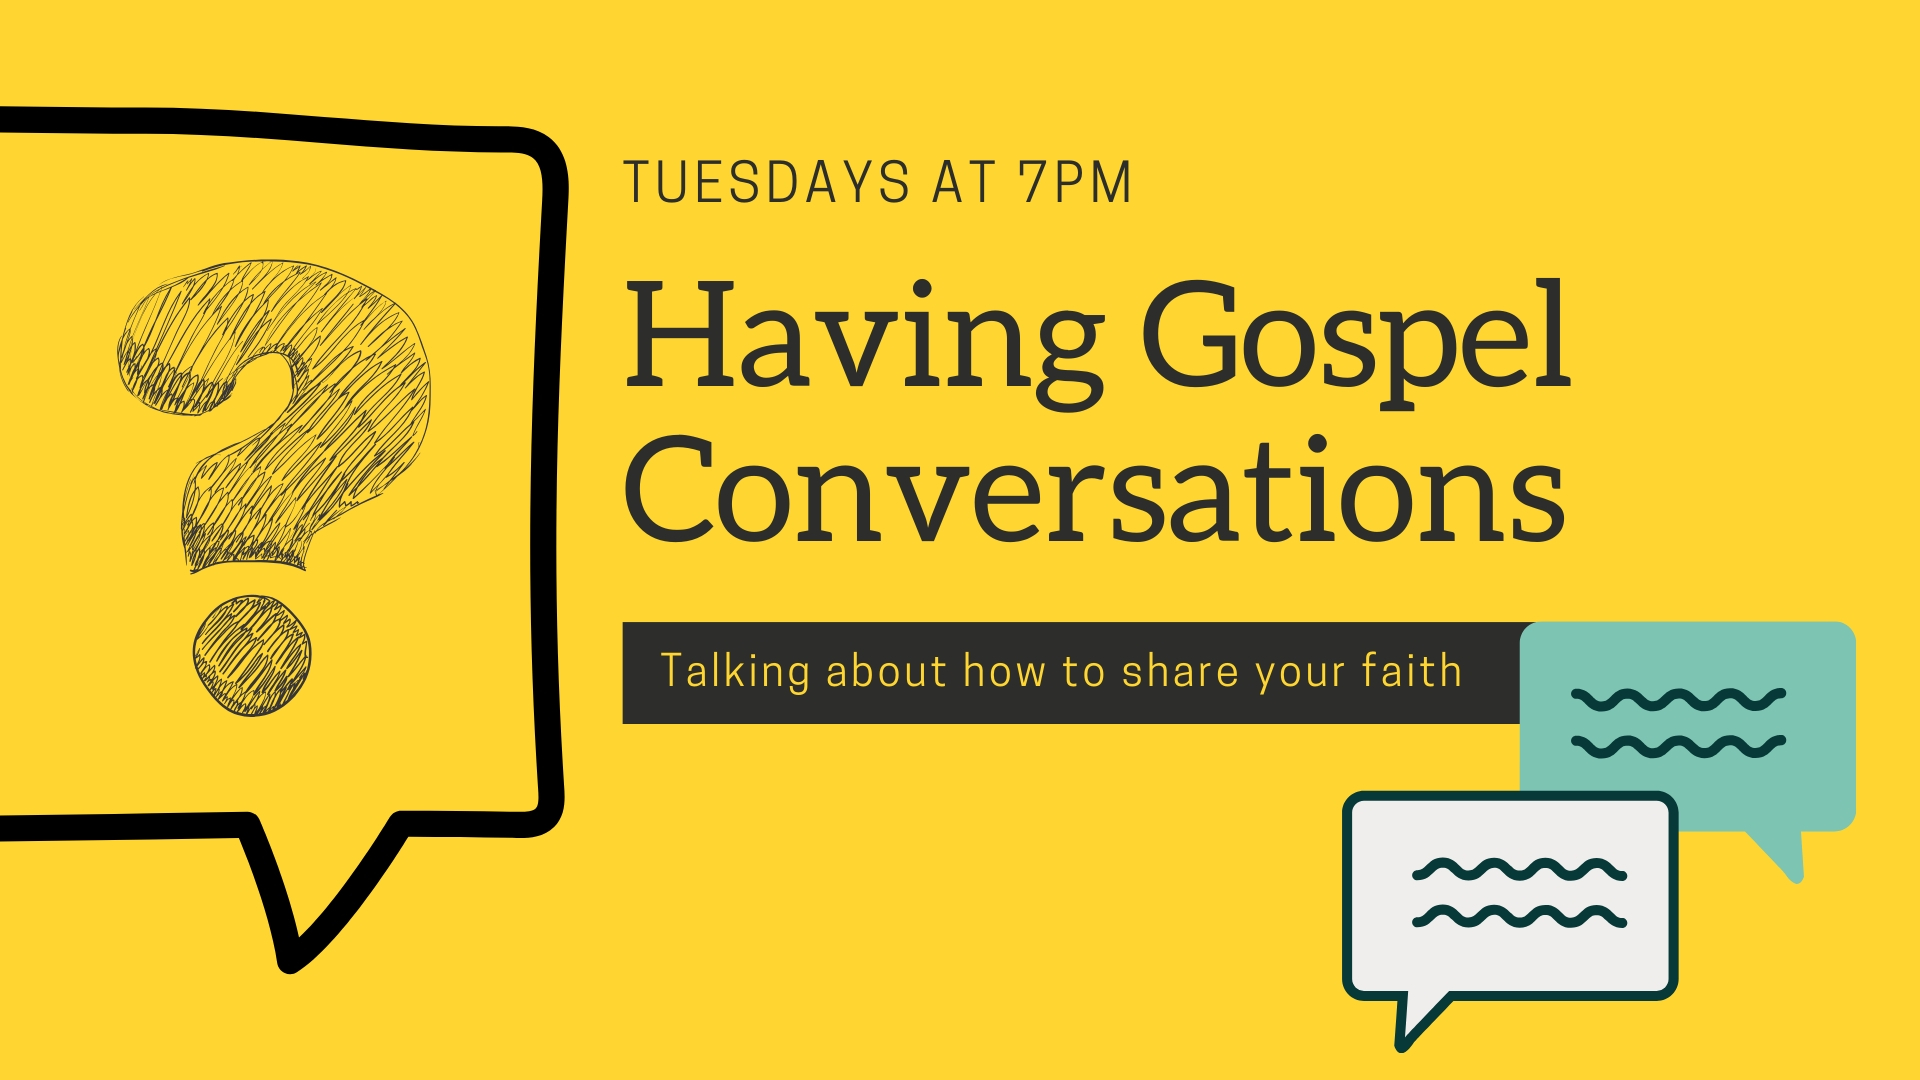 Having Gospel Conversations - Week 3 Image